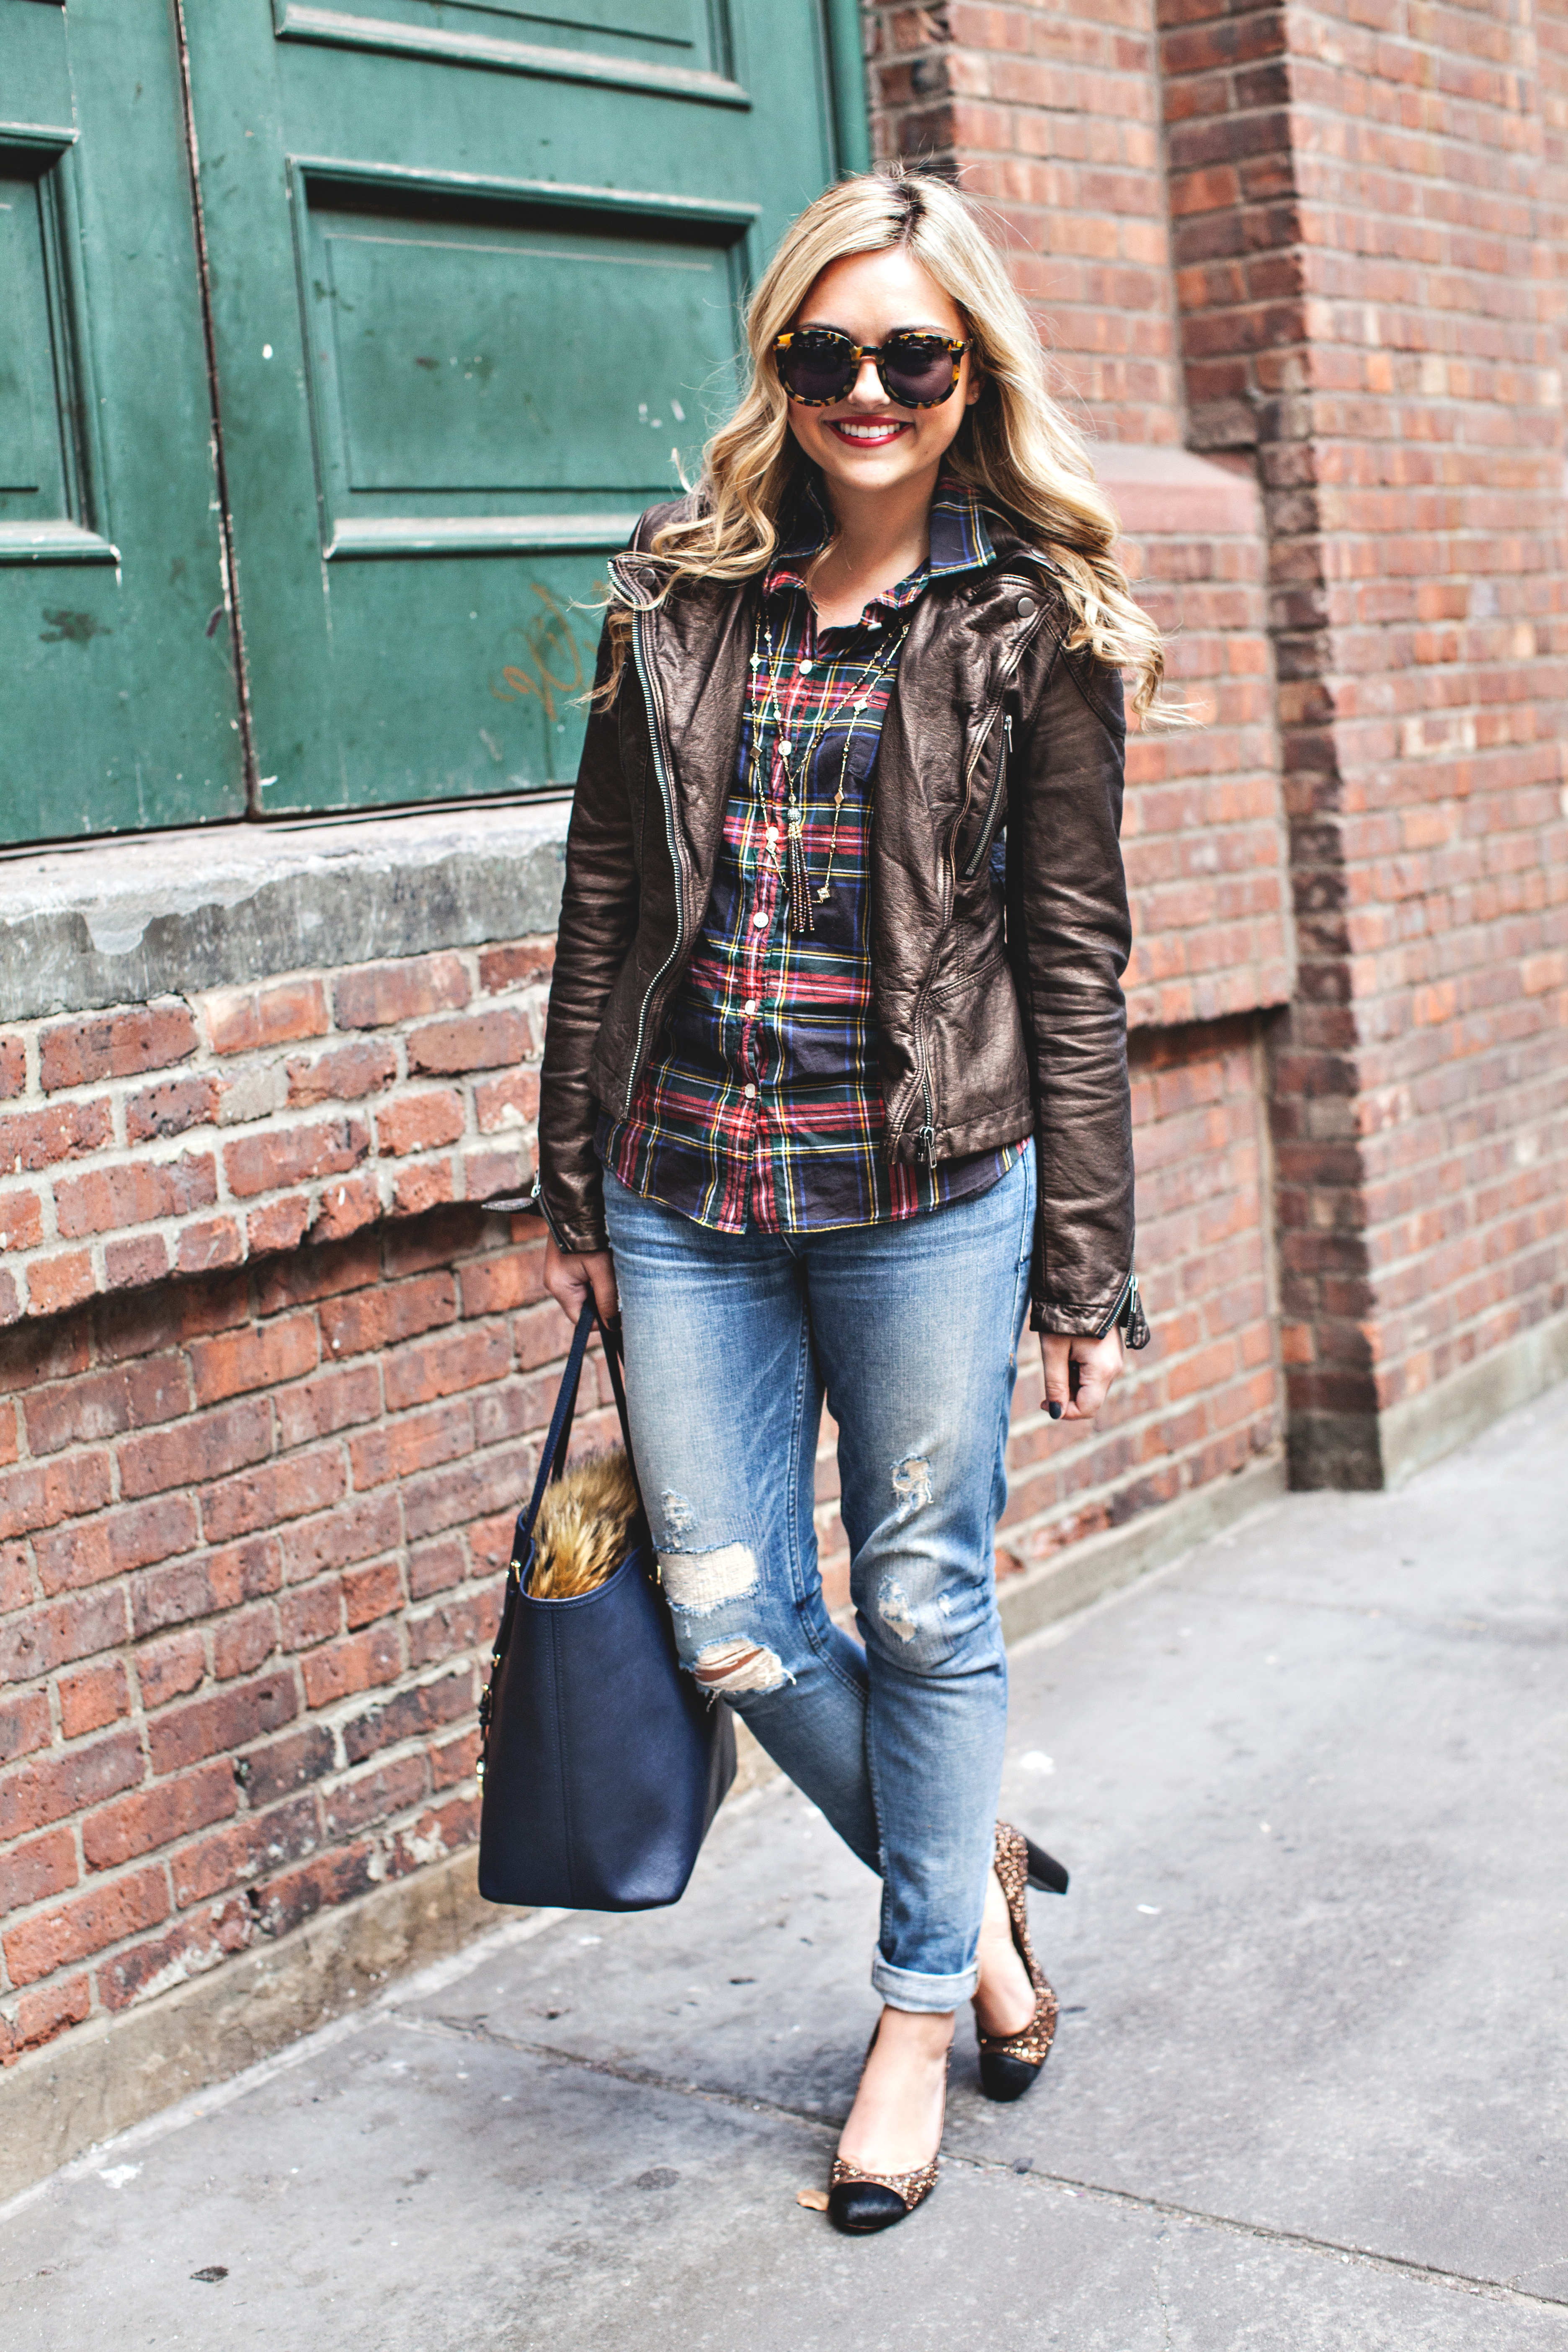 Leather Jacket, Plaid Shirt, Ripped Jeans, Glitter Heels